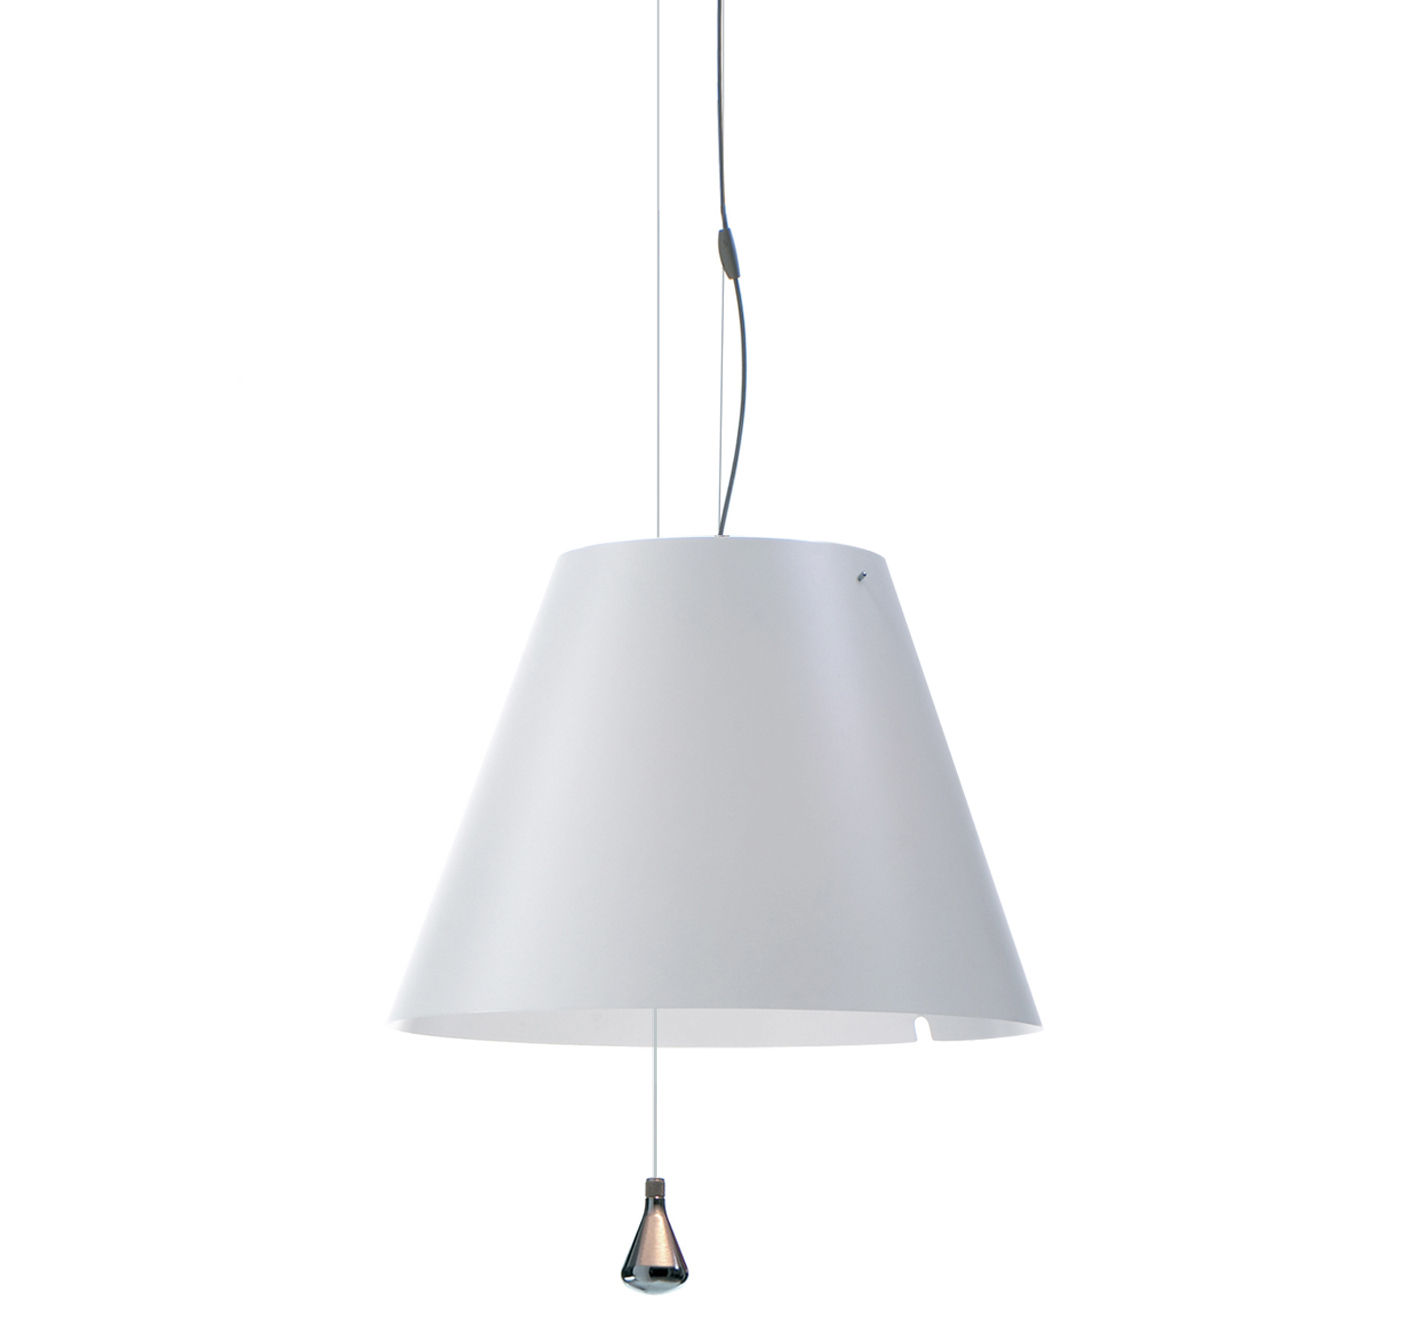 Lighting - Pendant Lighting - Lady Costanza Pendant by Luceplan - White - Polycarbonate